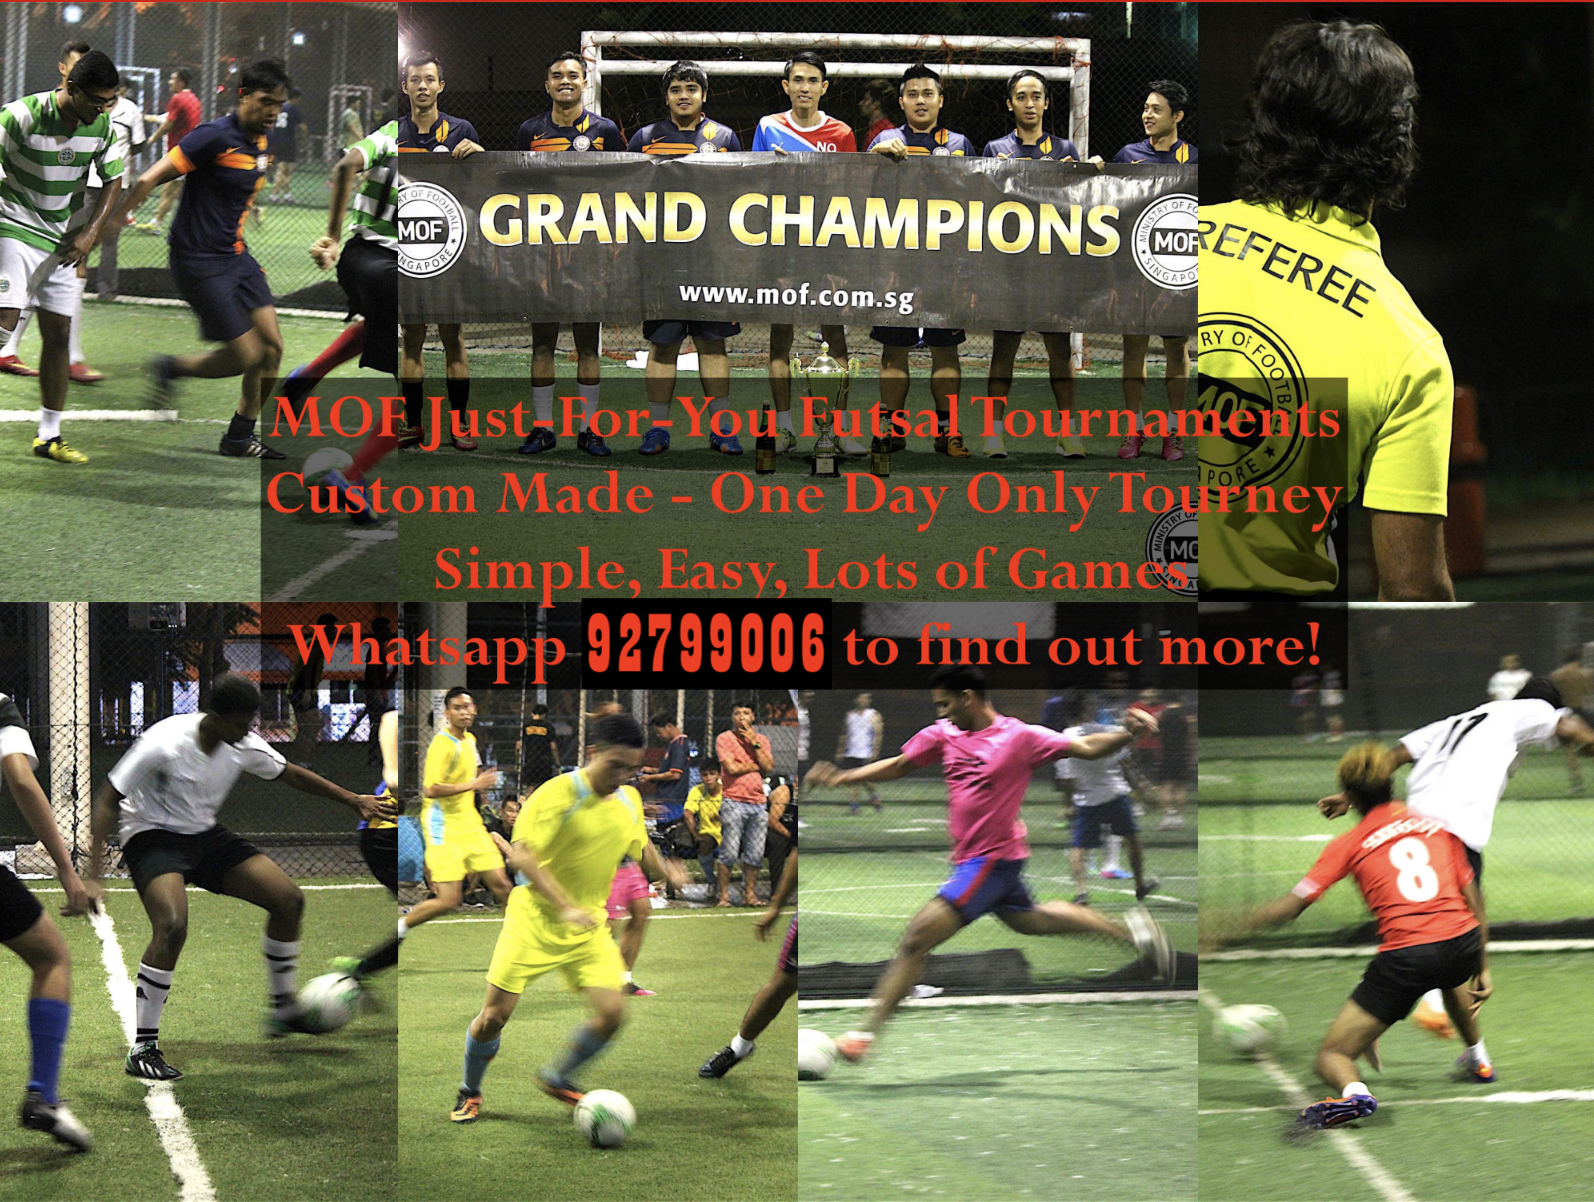 MOF Just-For-You Custom Futsal Tournament! Ministry of Sports 2019-10-05 17-11-08